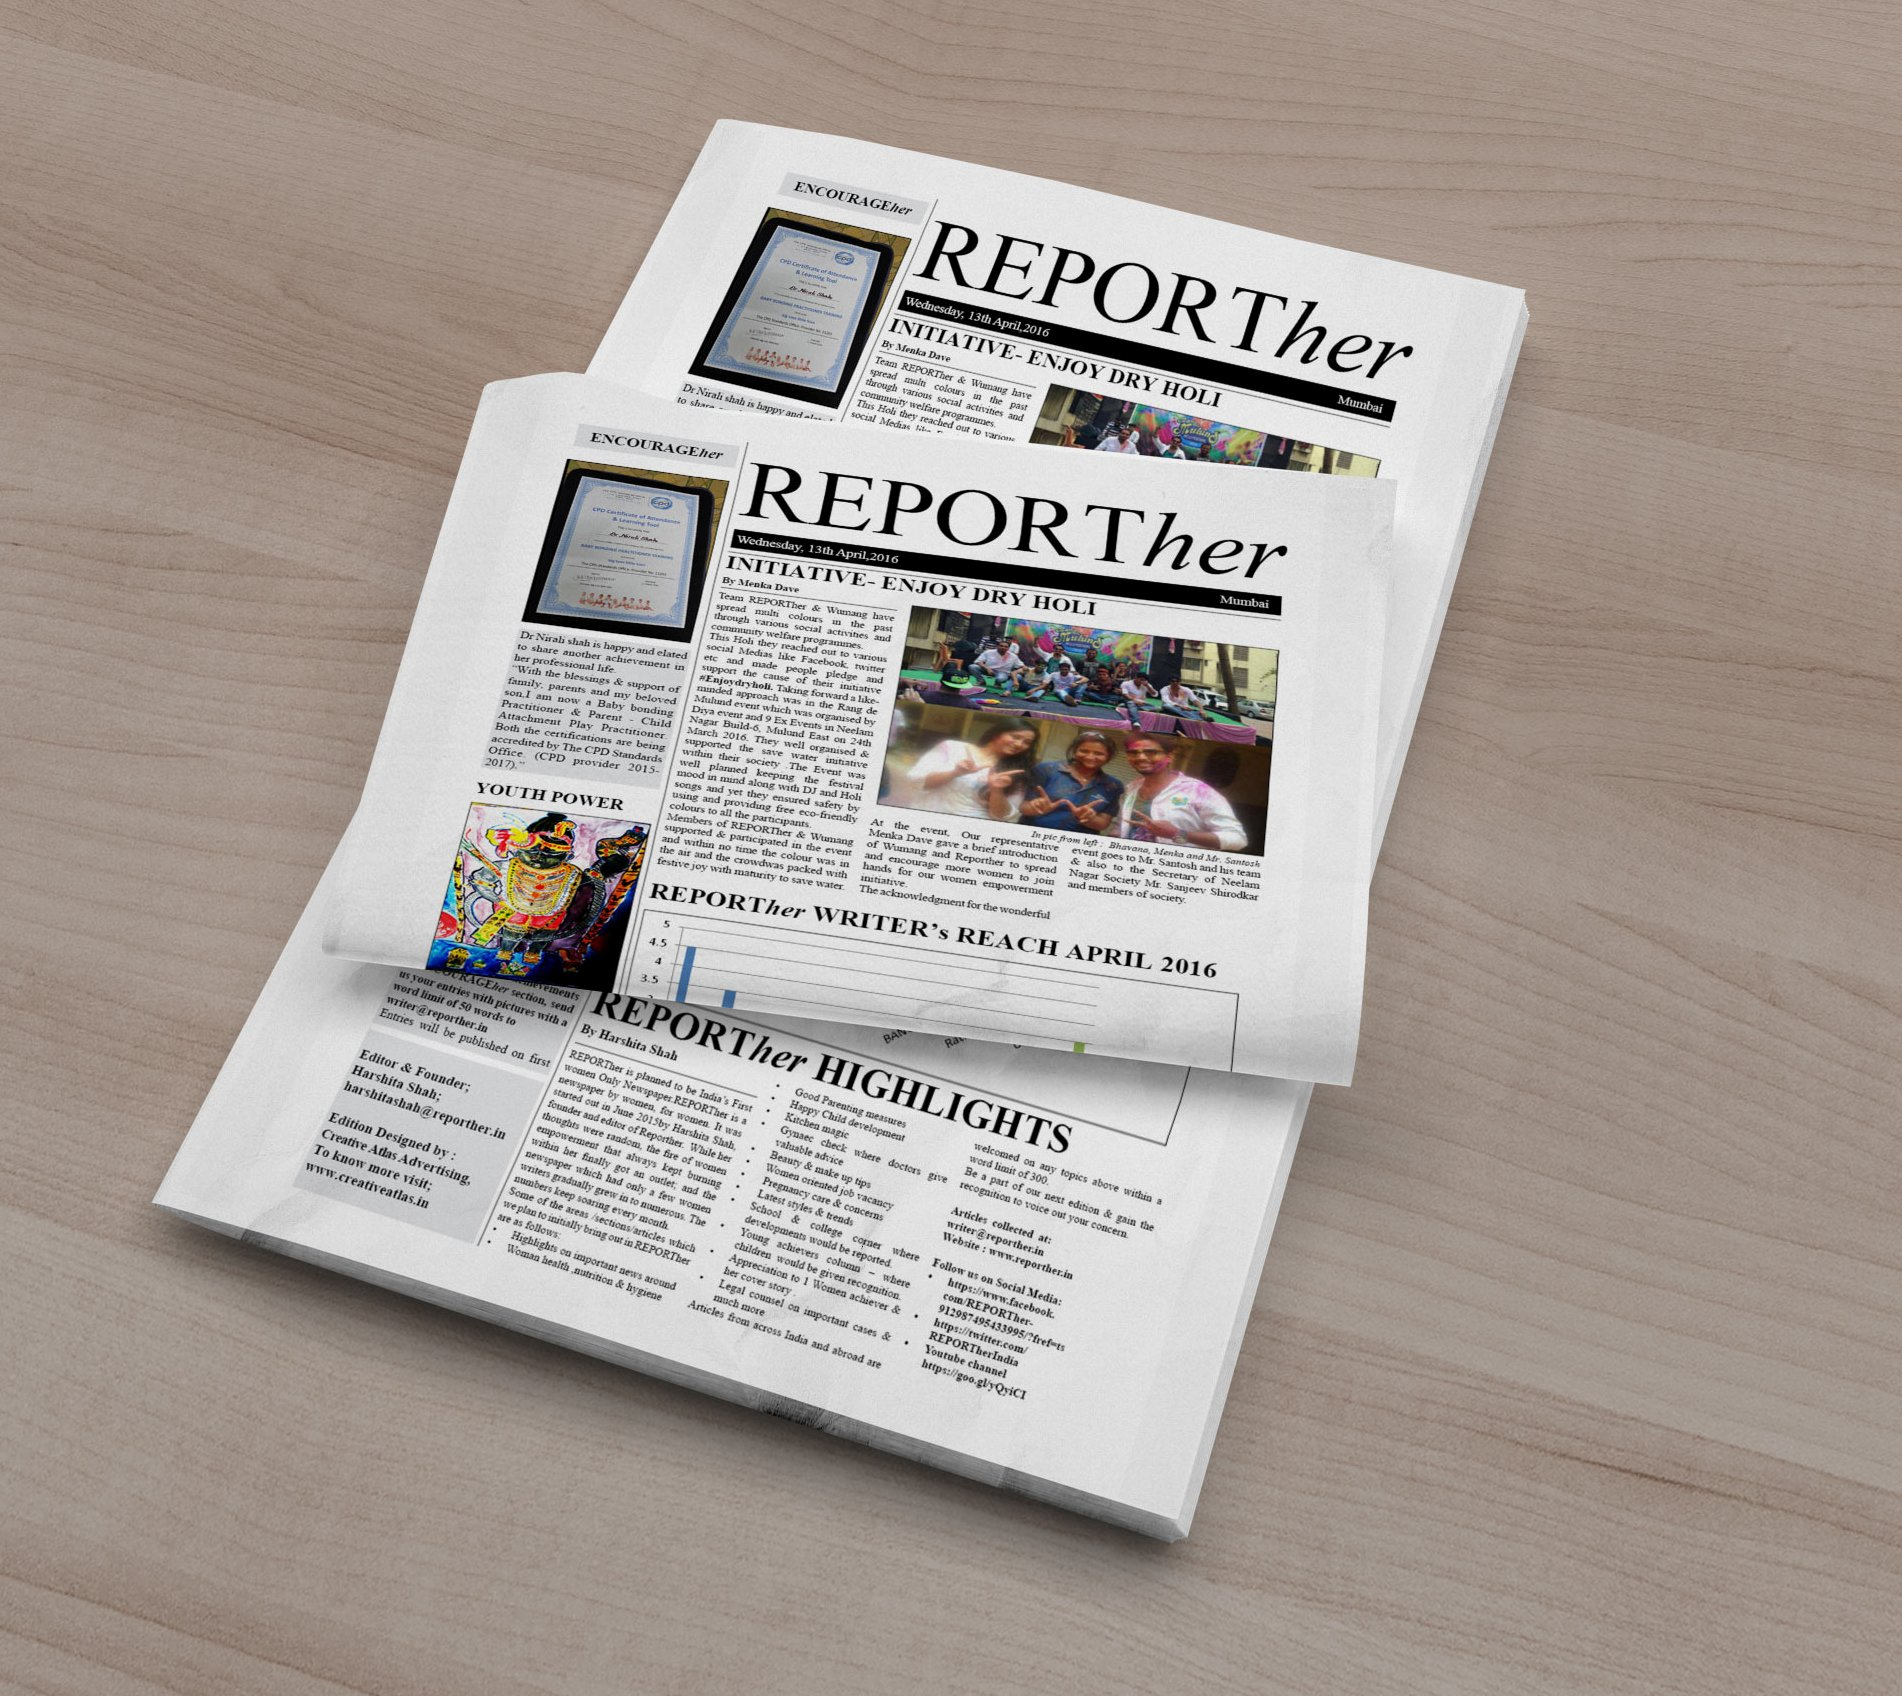 Newspaper Design for Reporther India Newspaper